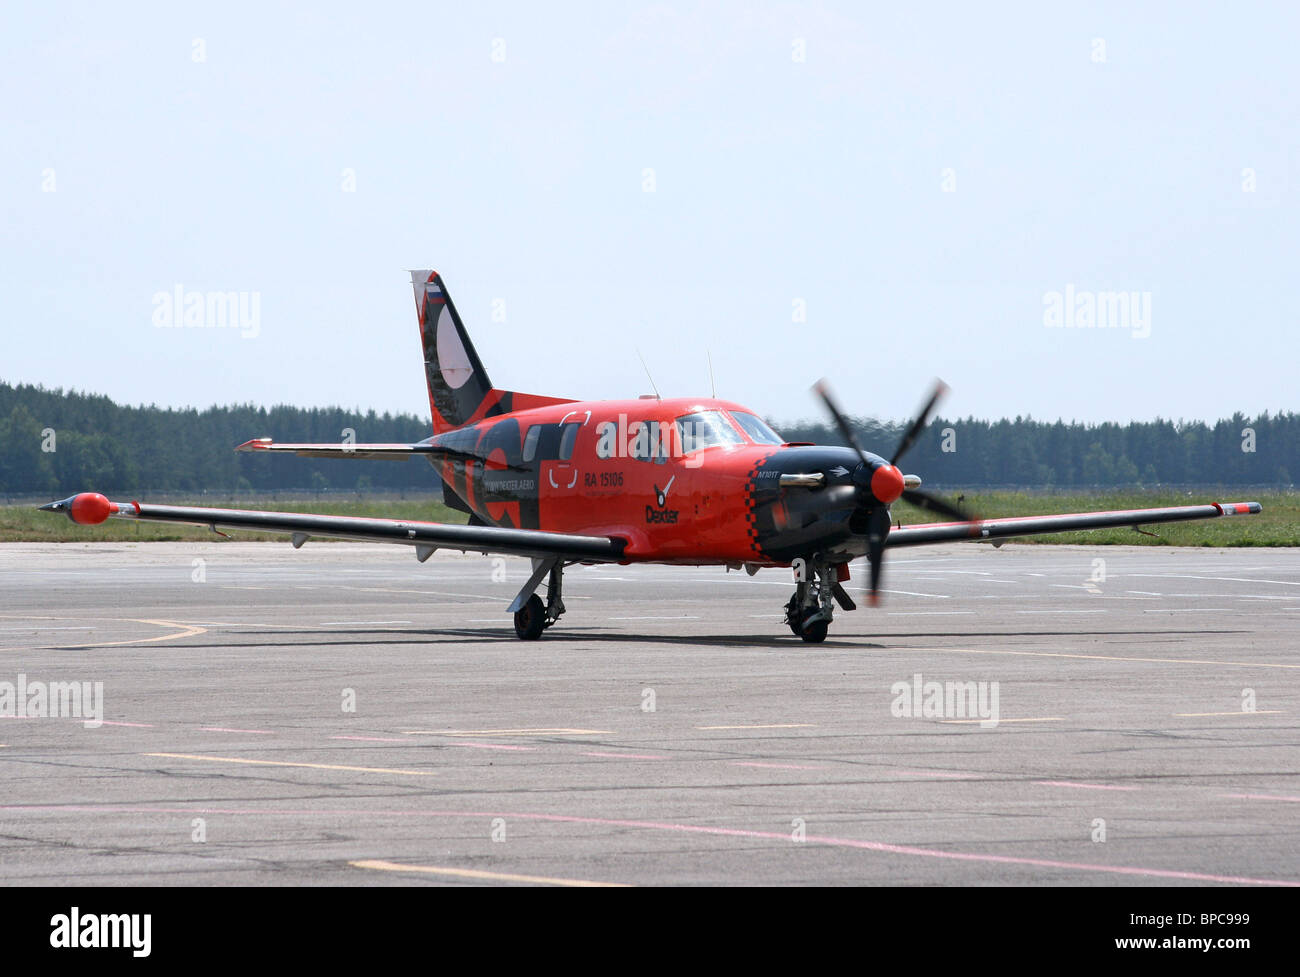 Air taxi startup company Dexter launches regular flights across Russia - Stock Image